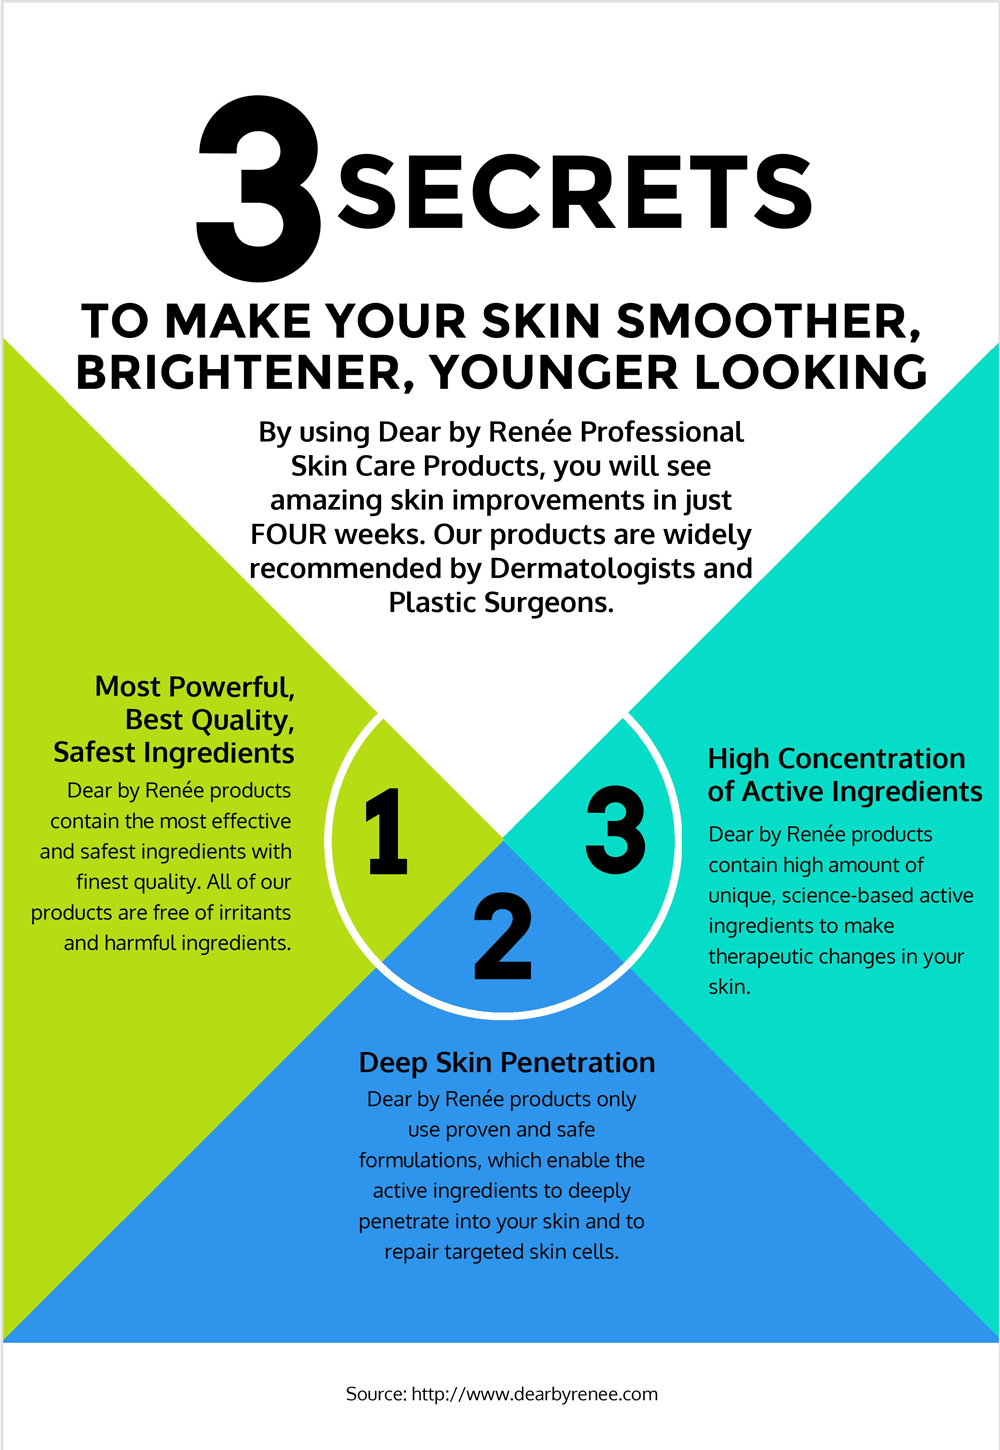 3 secrets to make your skin smoother, brightener, younger looking